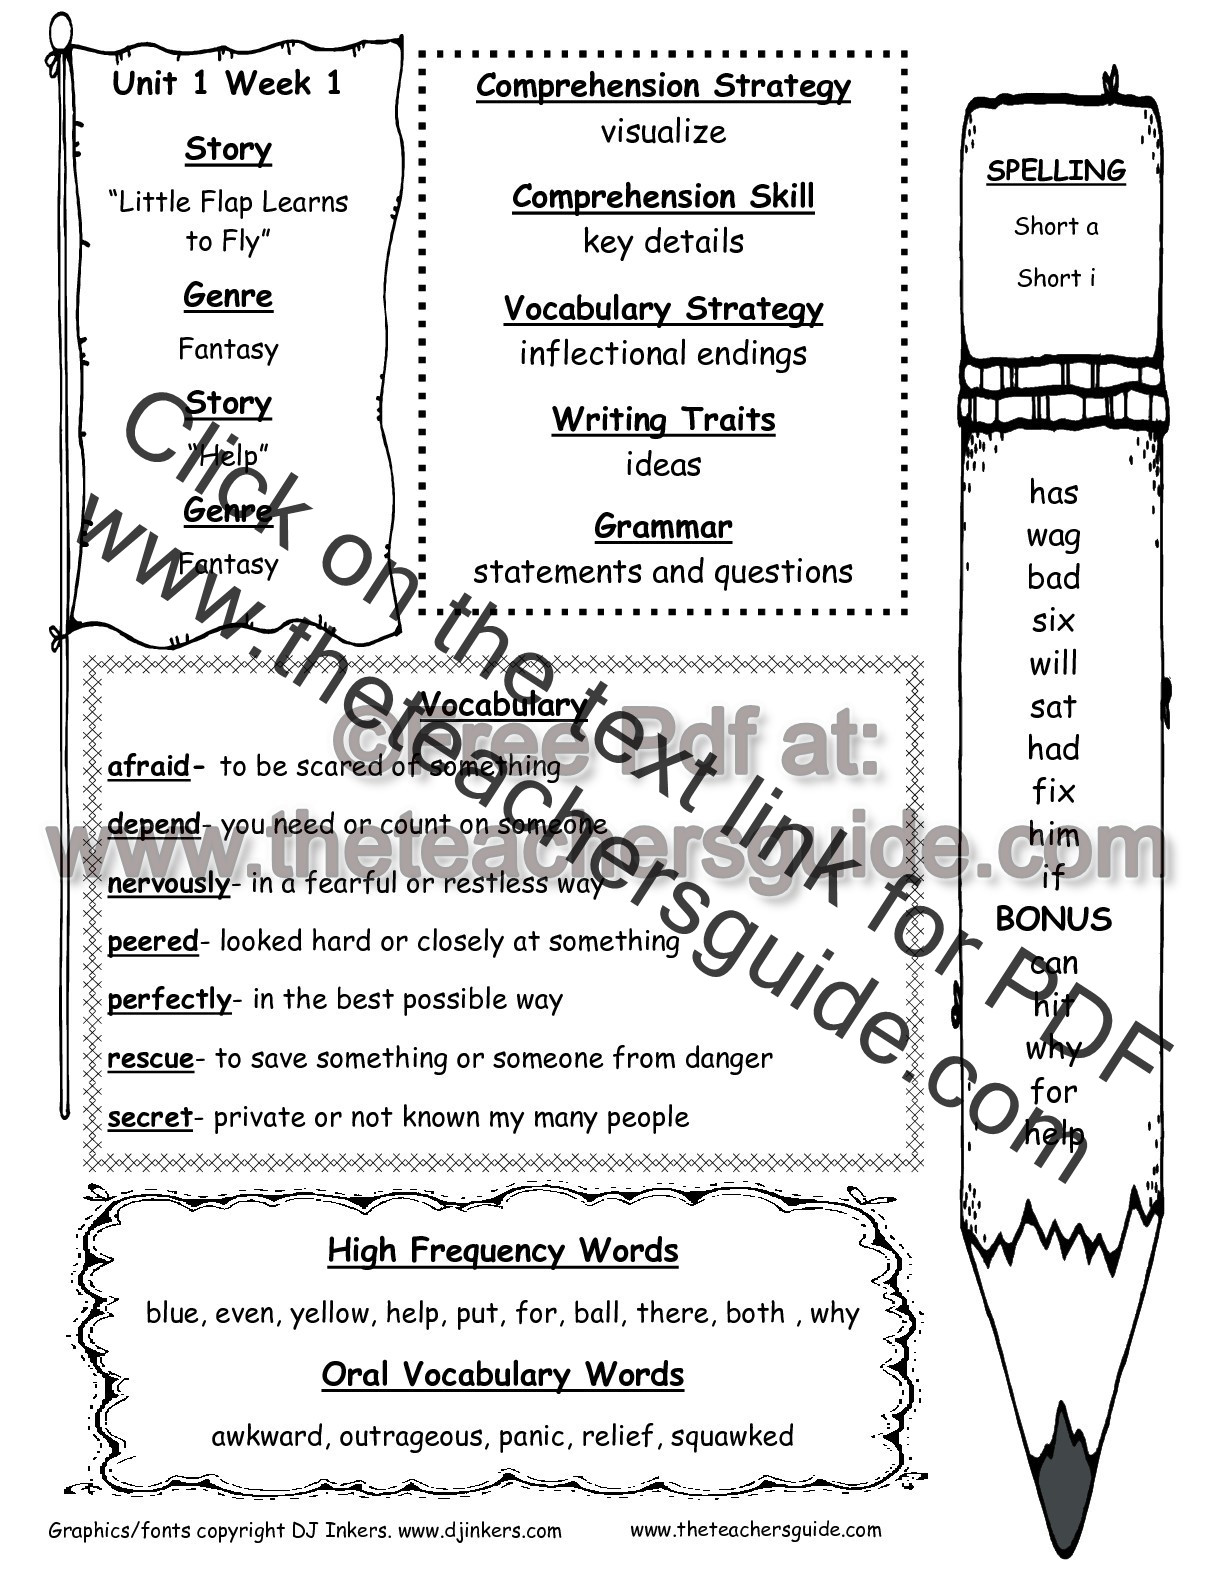 Spelling Worksheets 2nd Graders Mcgraw Hill Wonders Second Grade Resources and Printouts